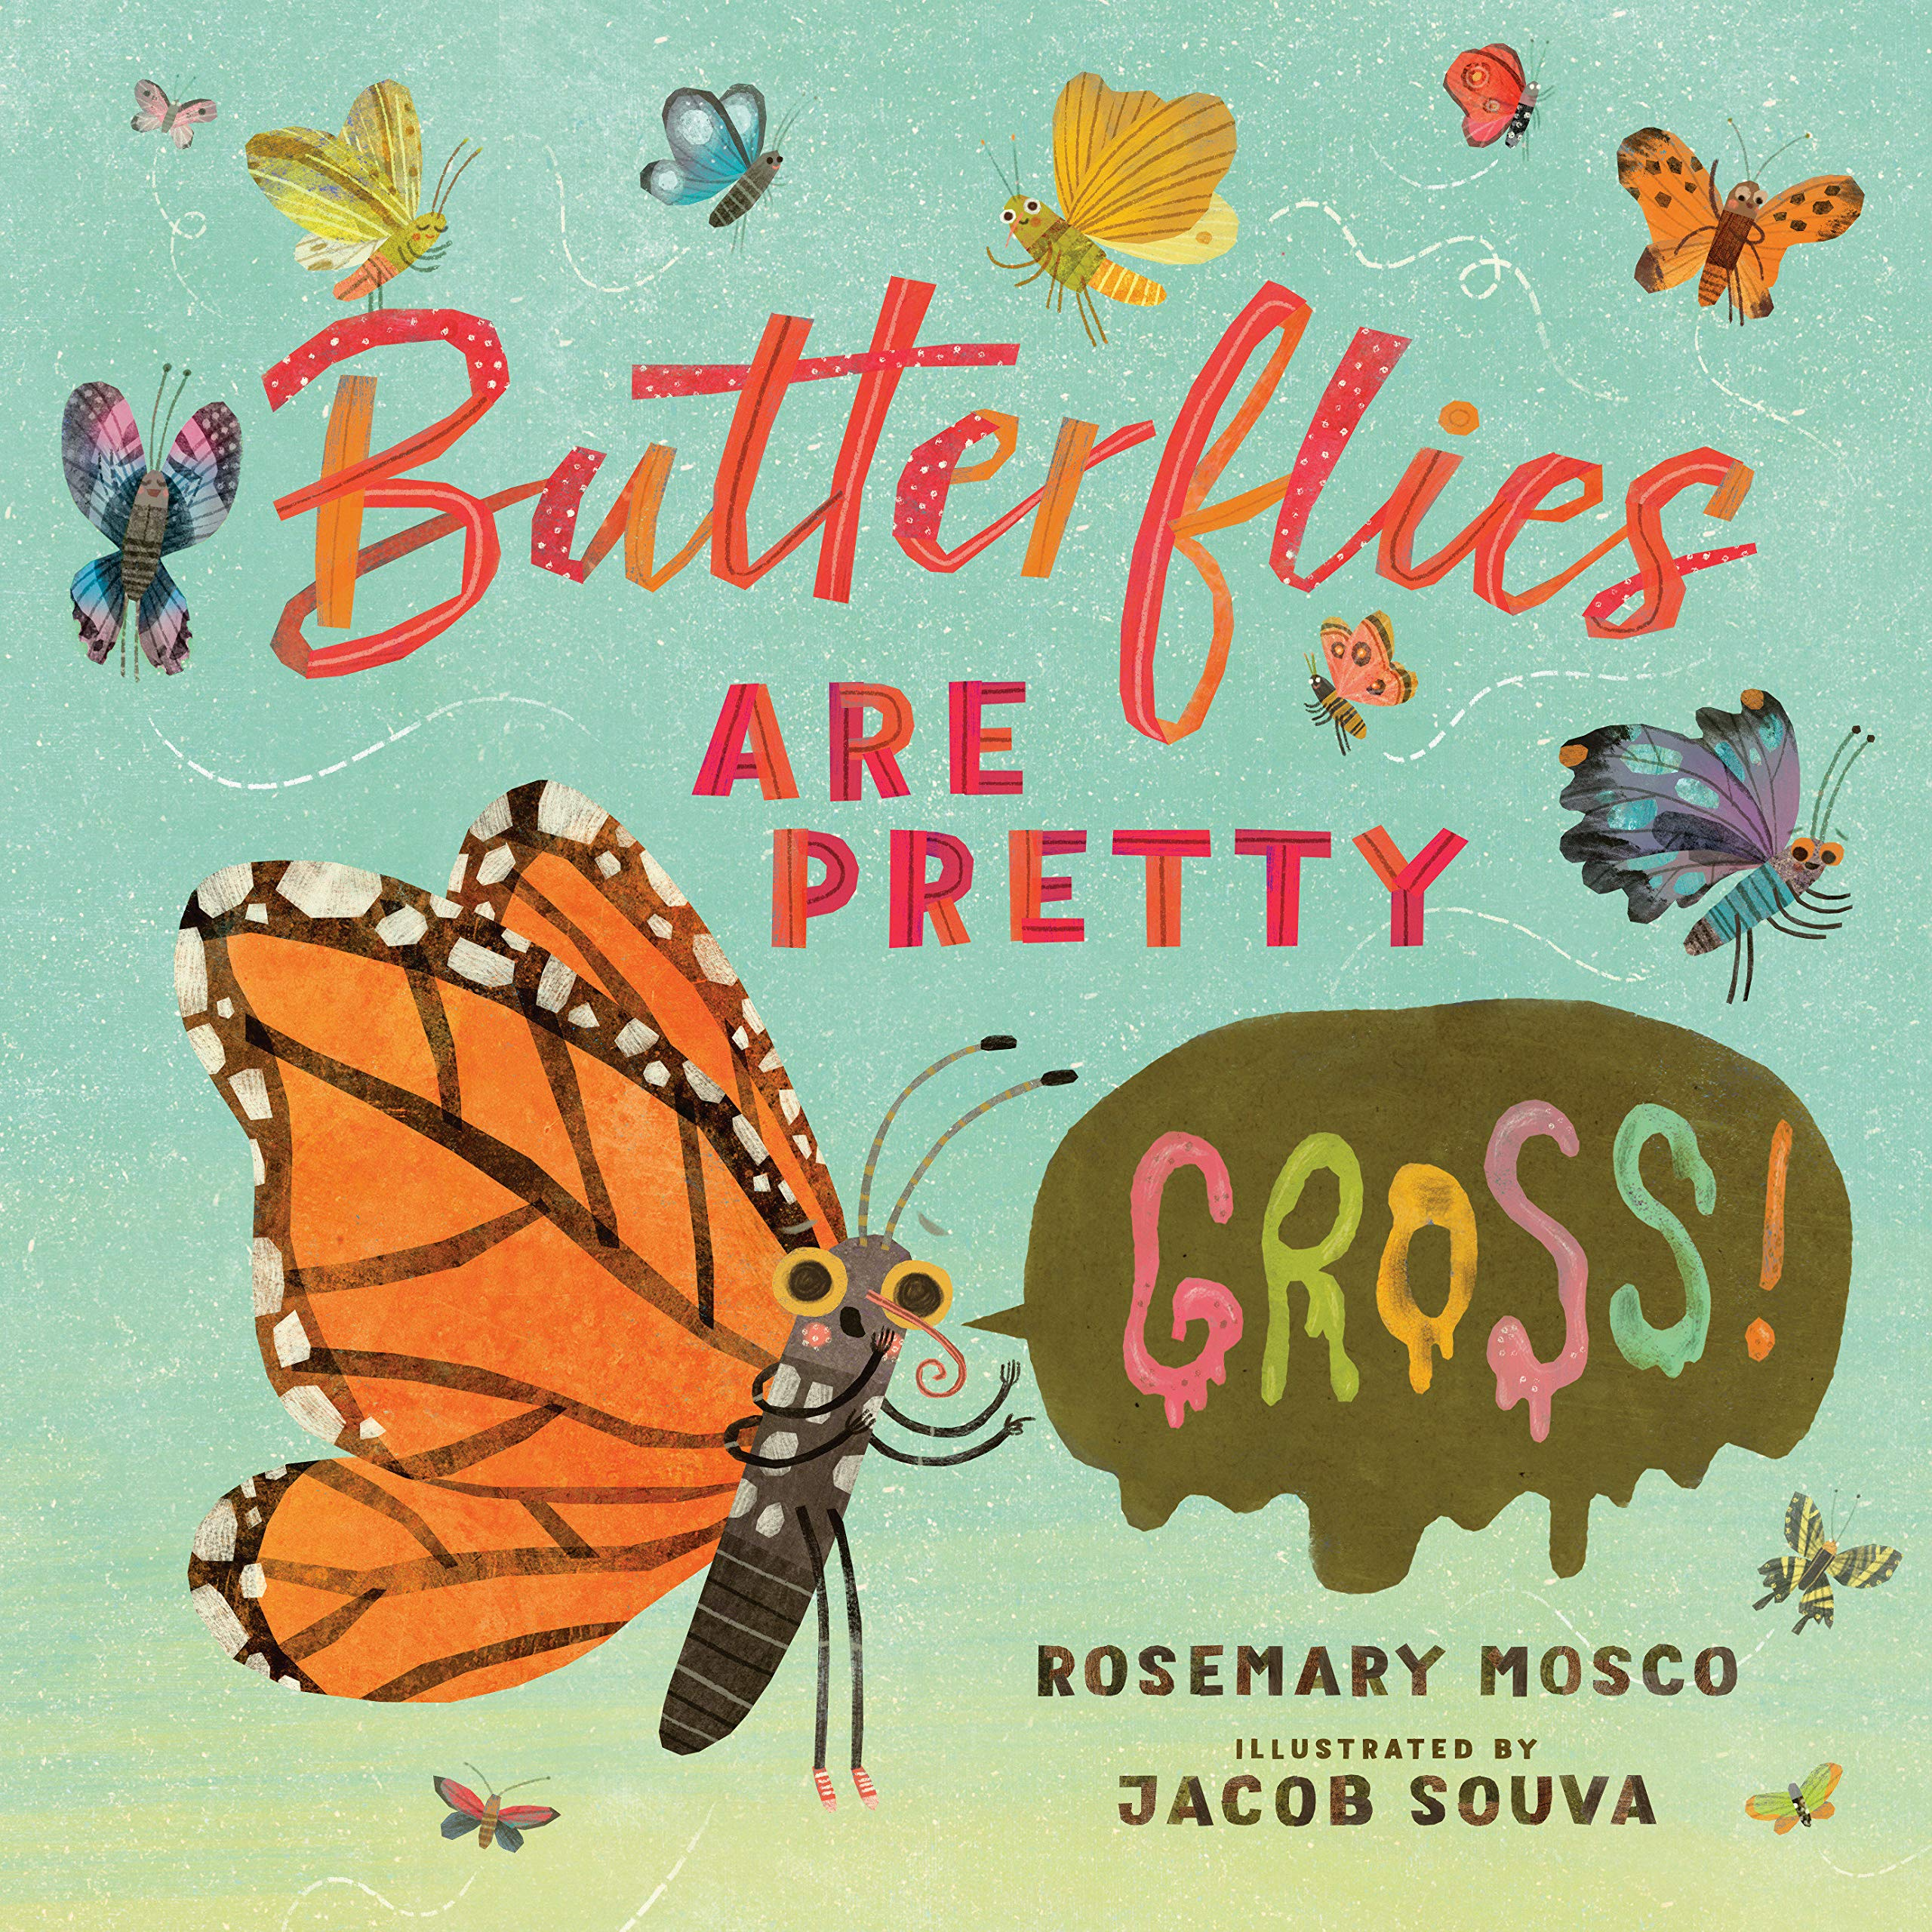 Butterflies Are Pretty ... Gross! (Nature's Top Secrets): Mosco, Rosemary,  Souva, Jacob: 9780735265929: Amazon.com: Books